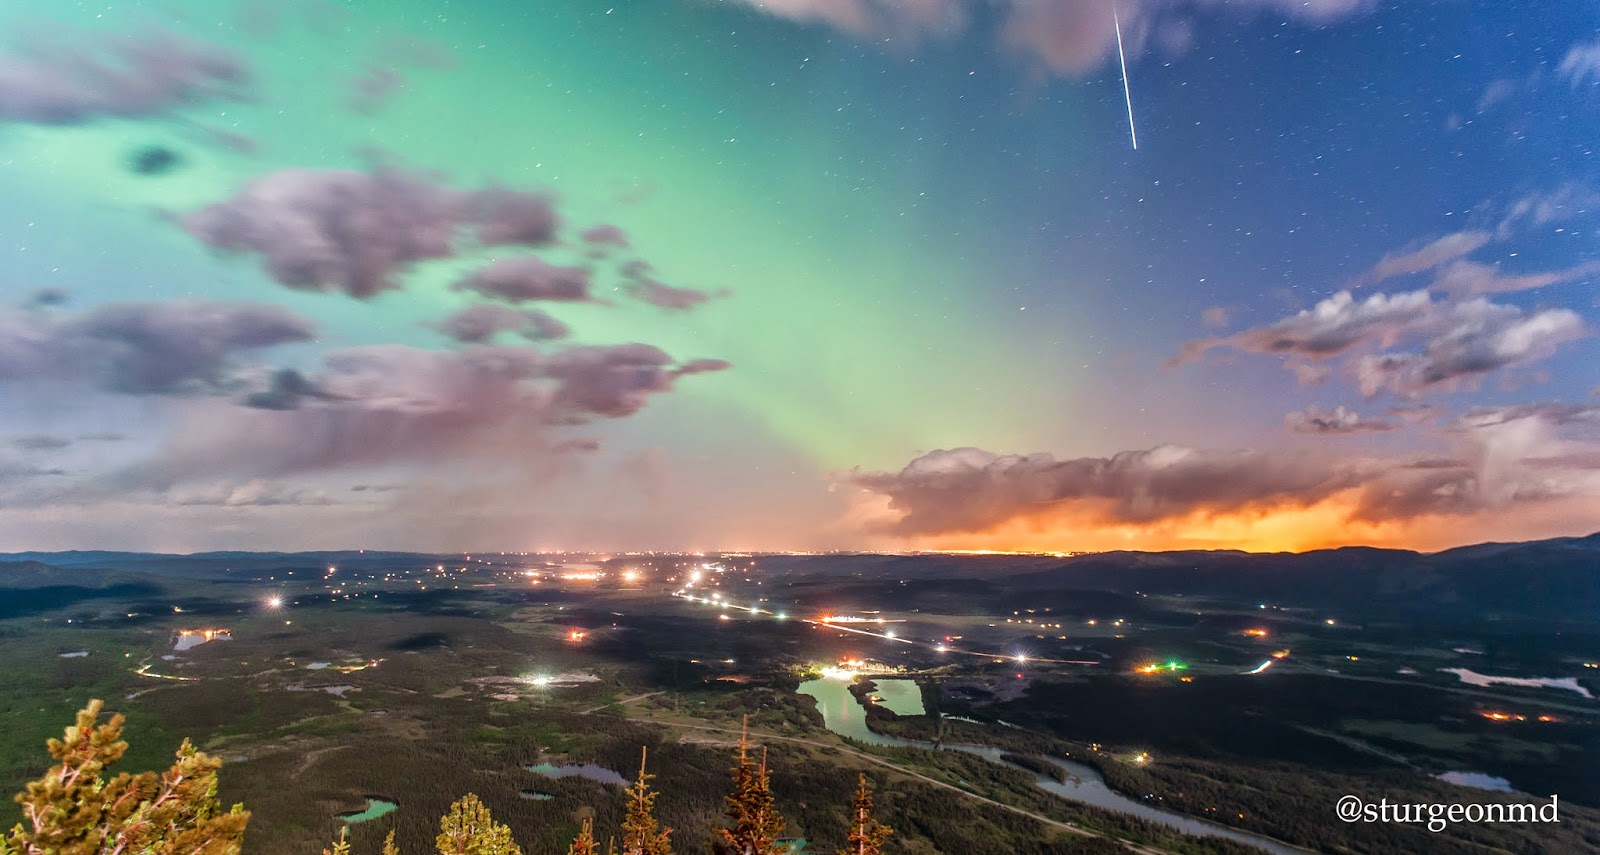 aurora borealis, northern lights, shooting star, rocky mountains, calgary